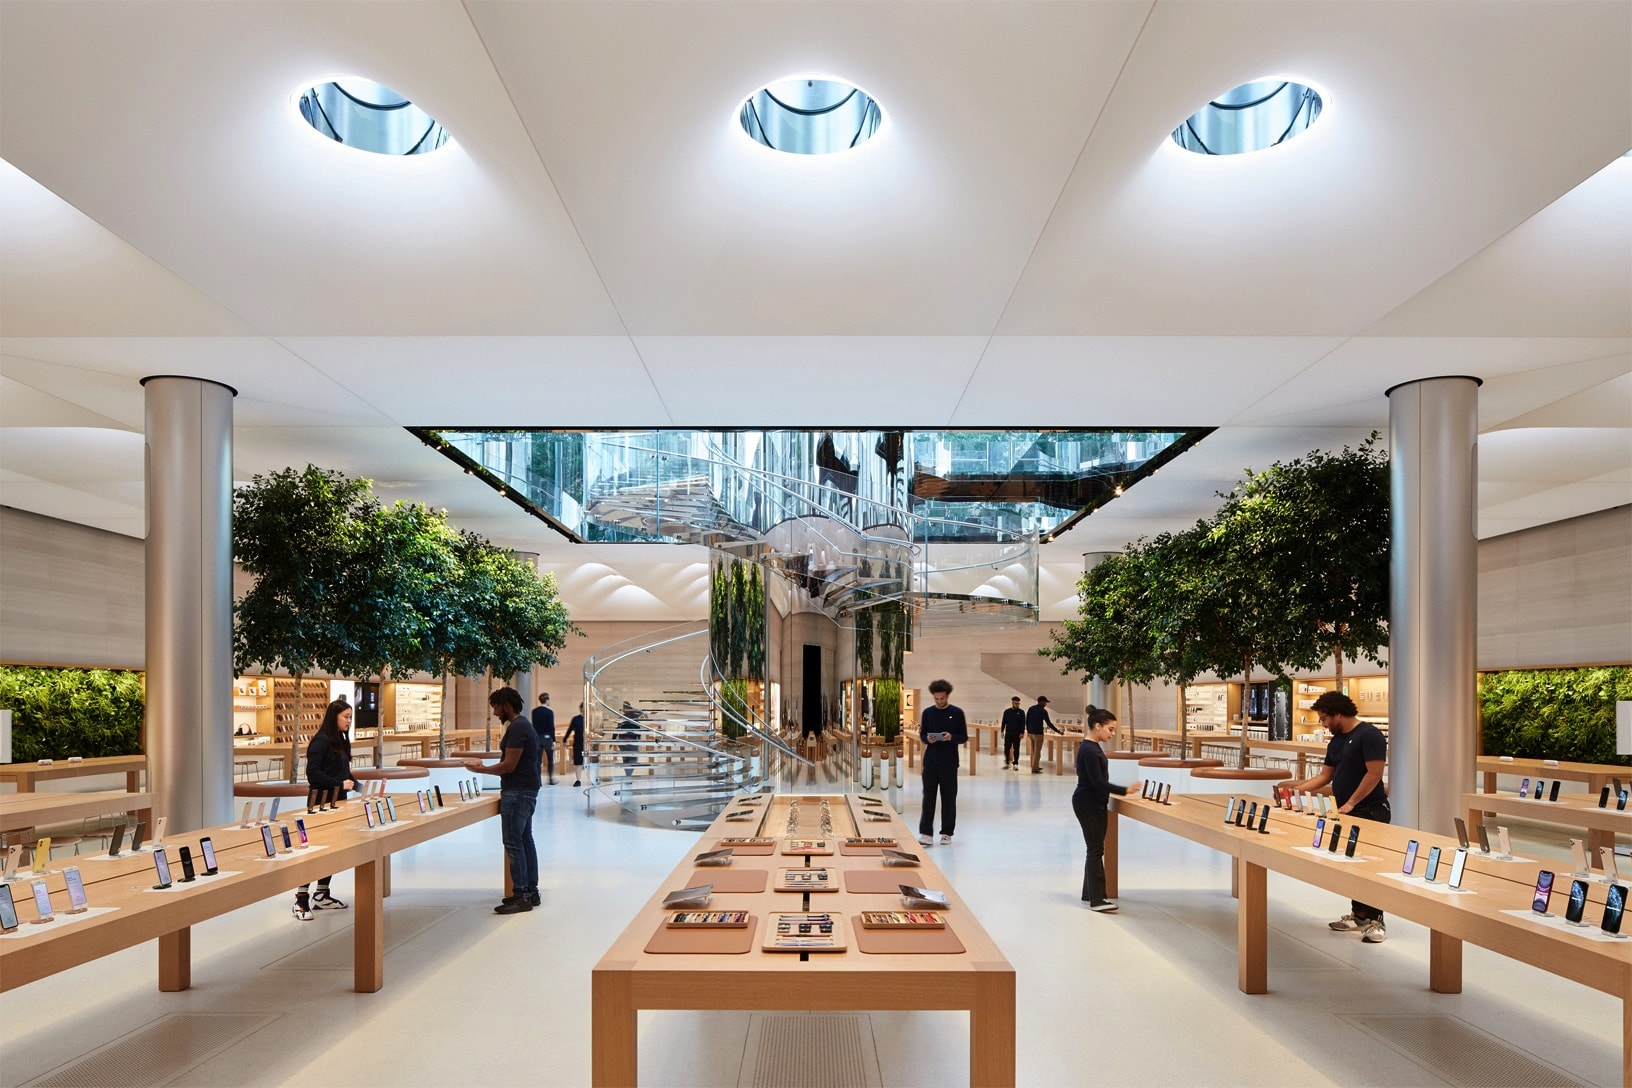 Apple will show off Apple TV+ at its Fifth Avenue Apple Store.